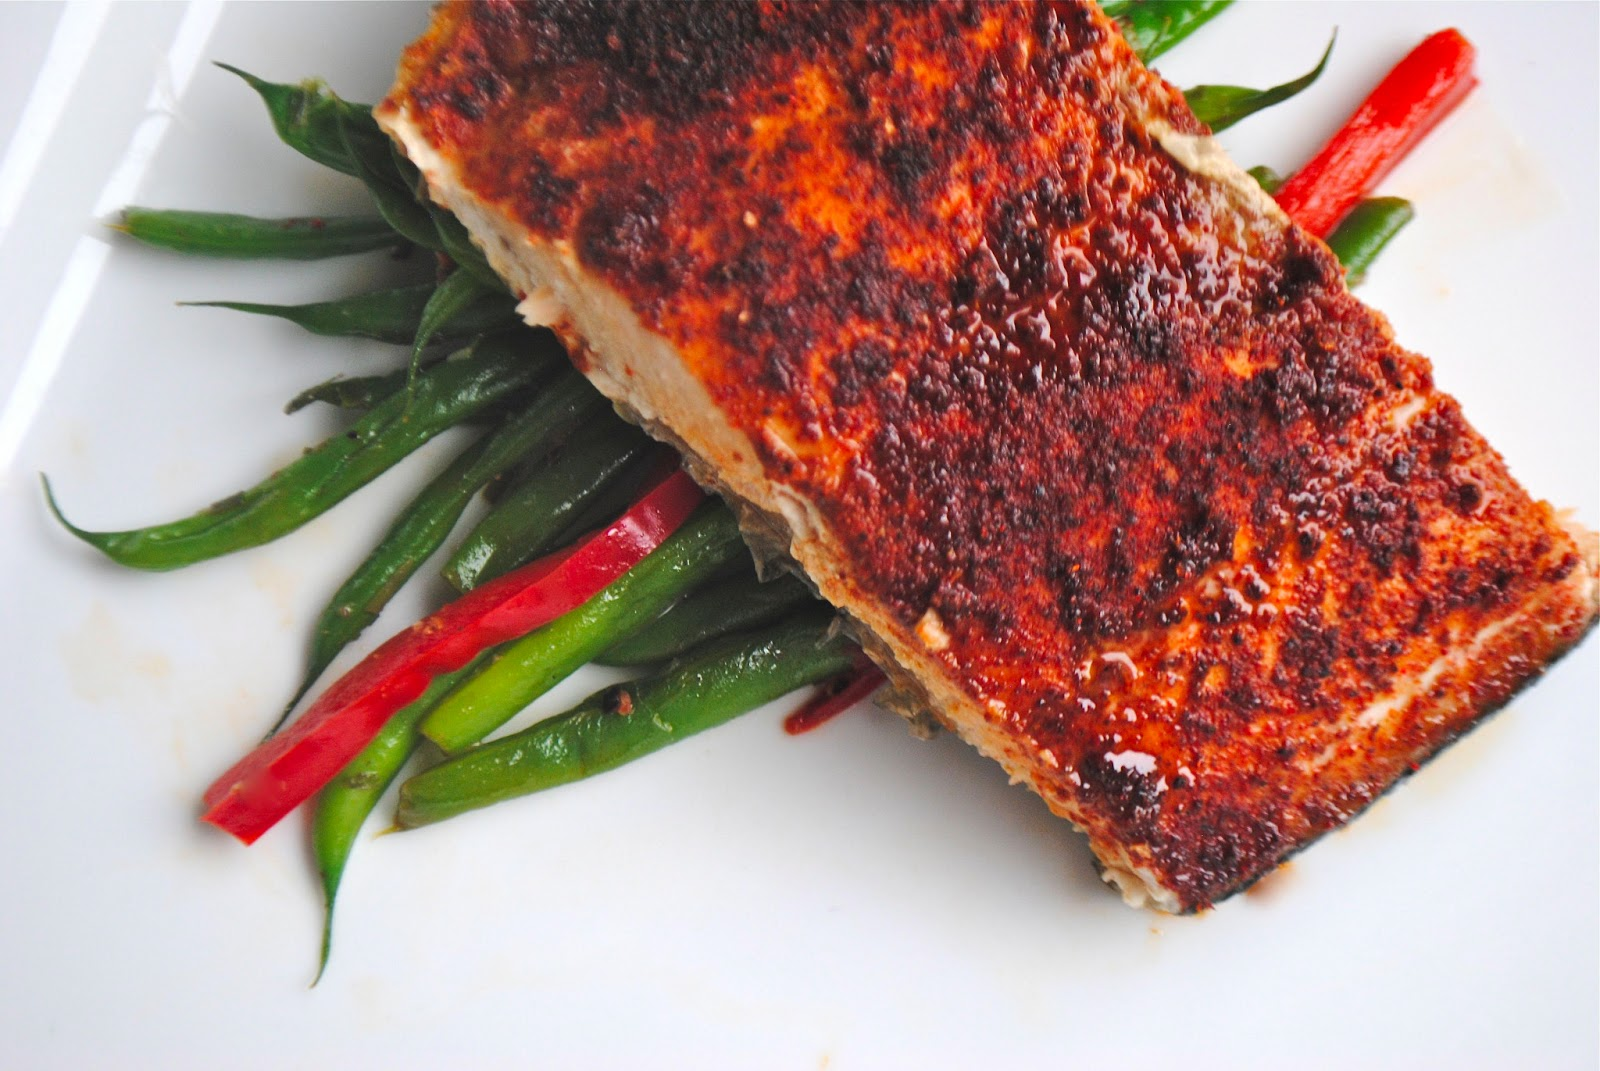 ... miso glaze broiled salmon with miso glaze 20120625 miso glazed salmon